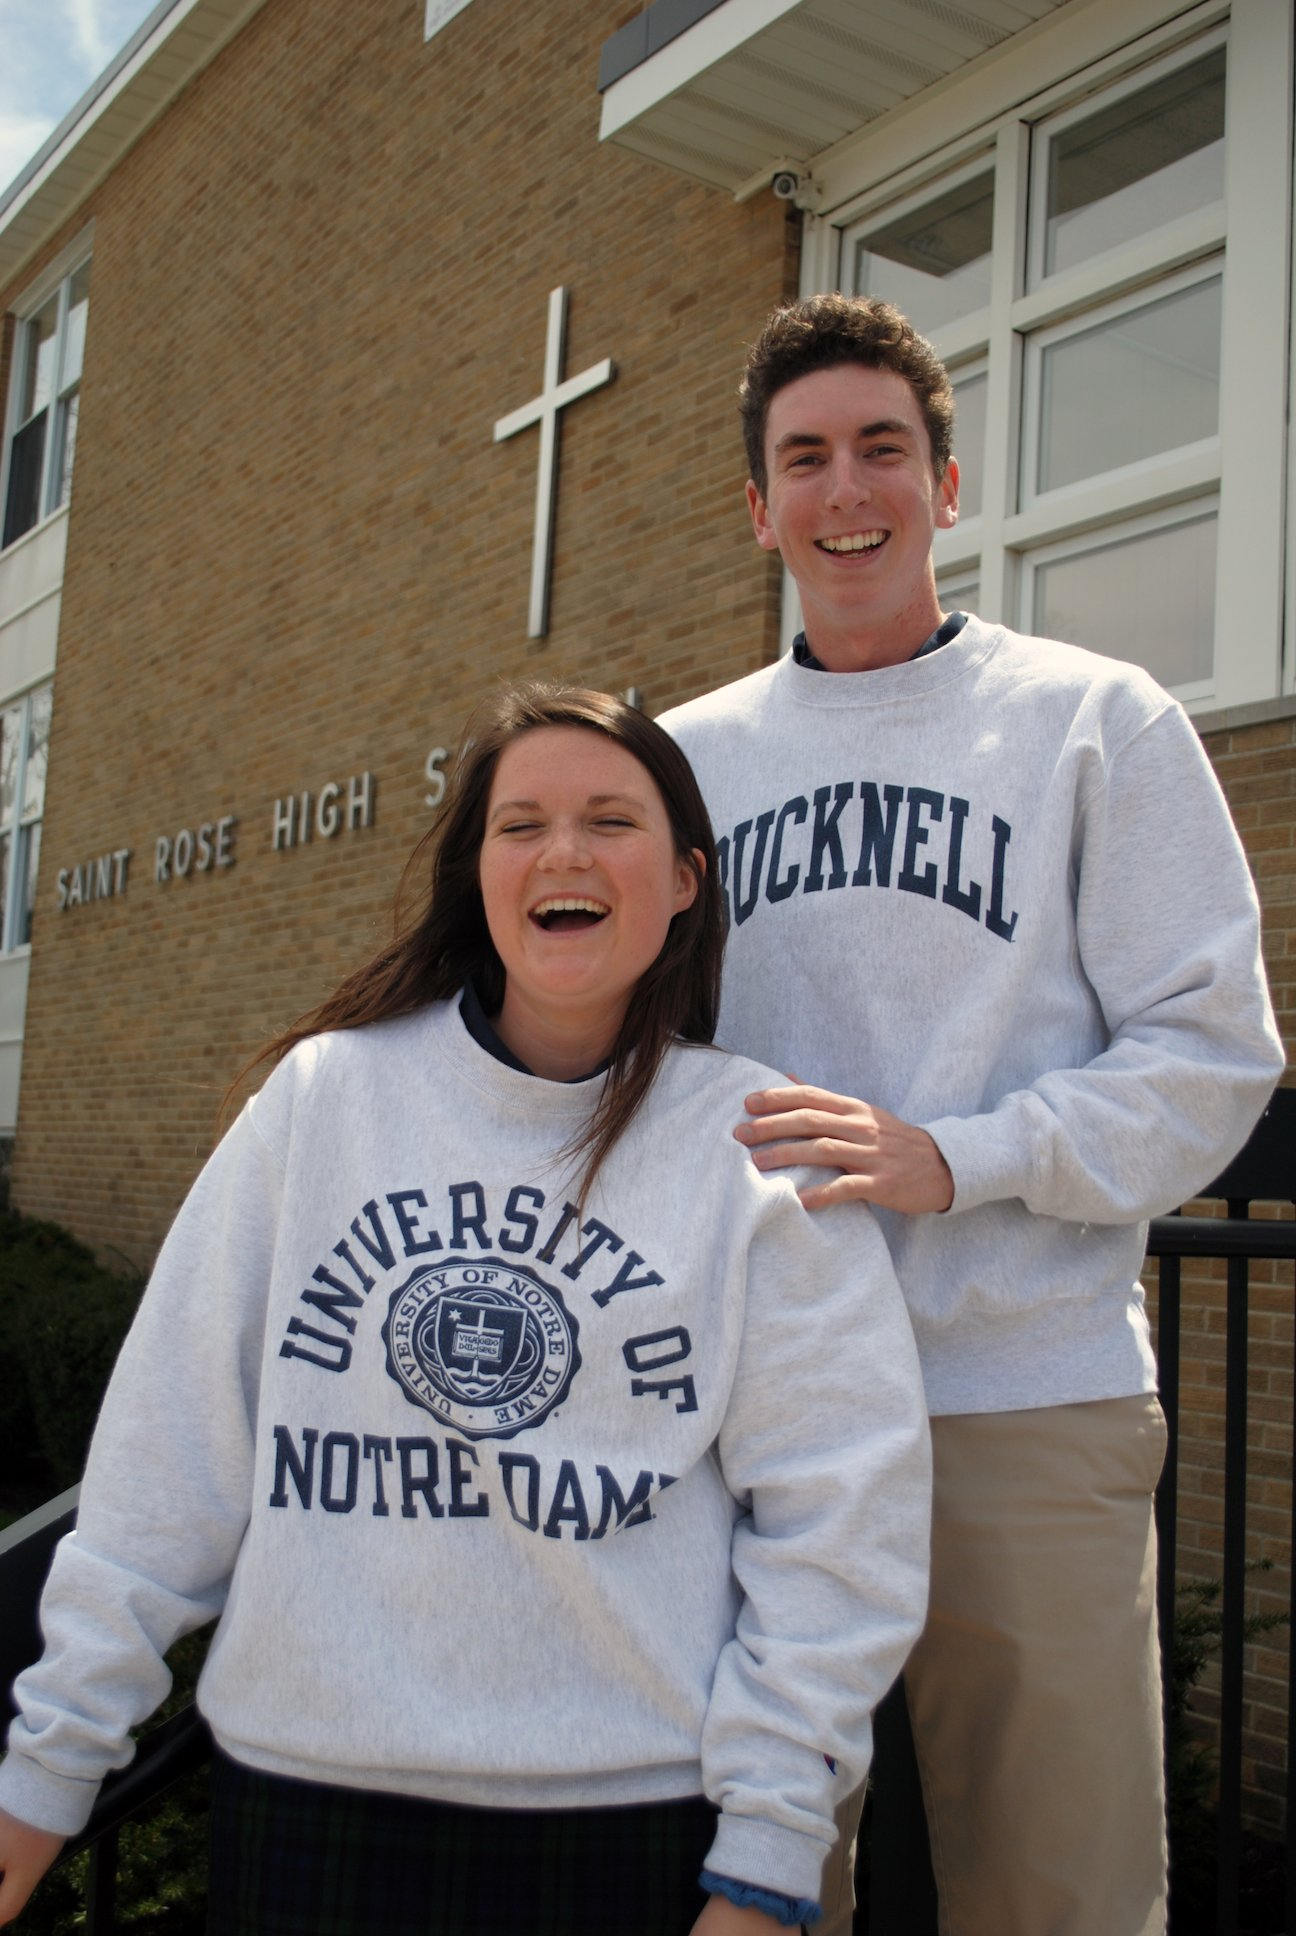 Image: Megan Kendall '18 and Will Gannon '18